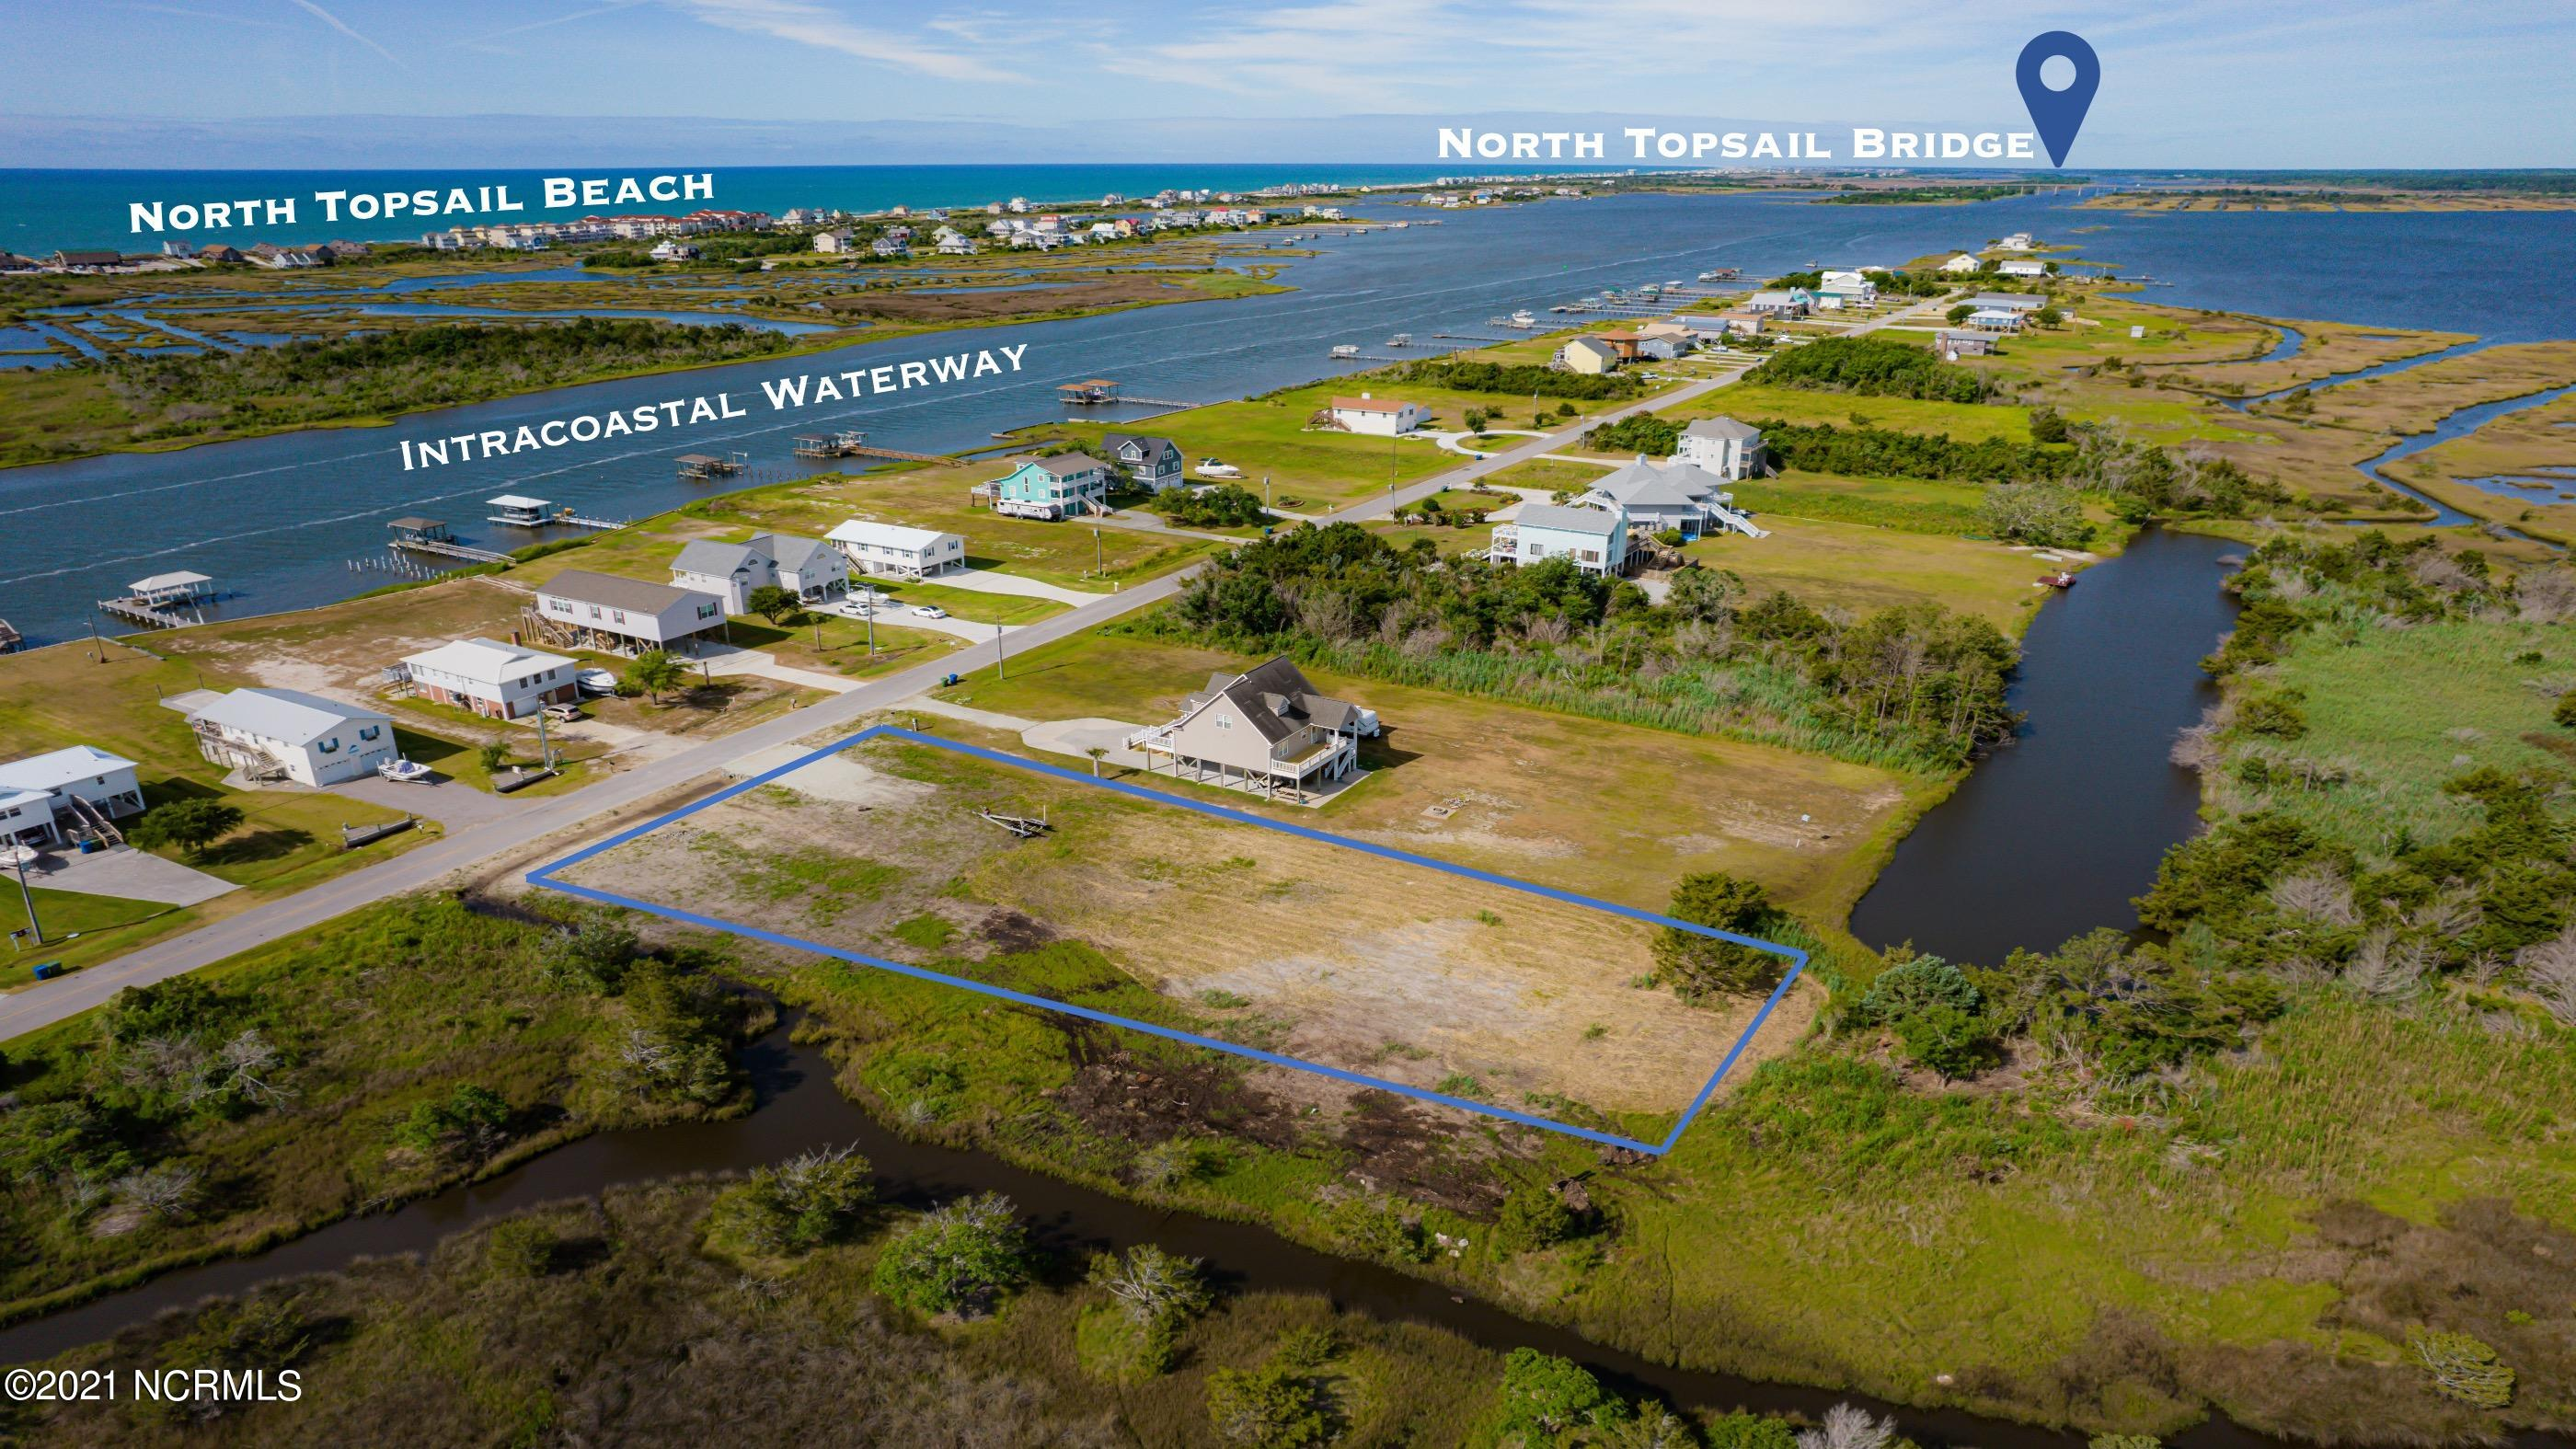 Build your dream home on this hidden gem! Double lot for sale in coastal Sneads Ferry. Watch the boats up & down the Intracoastal Waterway from across the street or look out back for stunning views of the salt marsh and sound. This is not one but TWO lots being sold together totaling .83 acres giving a great opportunity to build the home of your dreams. Each lot is 70' wide and 270' deep, allowing for a generous building envelope & backing up the salt marsh. There is a creek/canal that runs along the side of one lot giving access for kayaks, paddle boards and fishing galore. Both lots recently cleared and driveway culvert in place... All this property needs is you.A few deed restrictions apply, mobile homes are not allowed. Water and Sewer is available through Onwasa & Pluris. Bring all offers and secure your slice of the beautiful NC Coast!